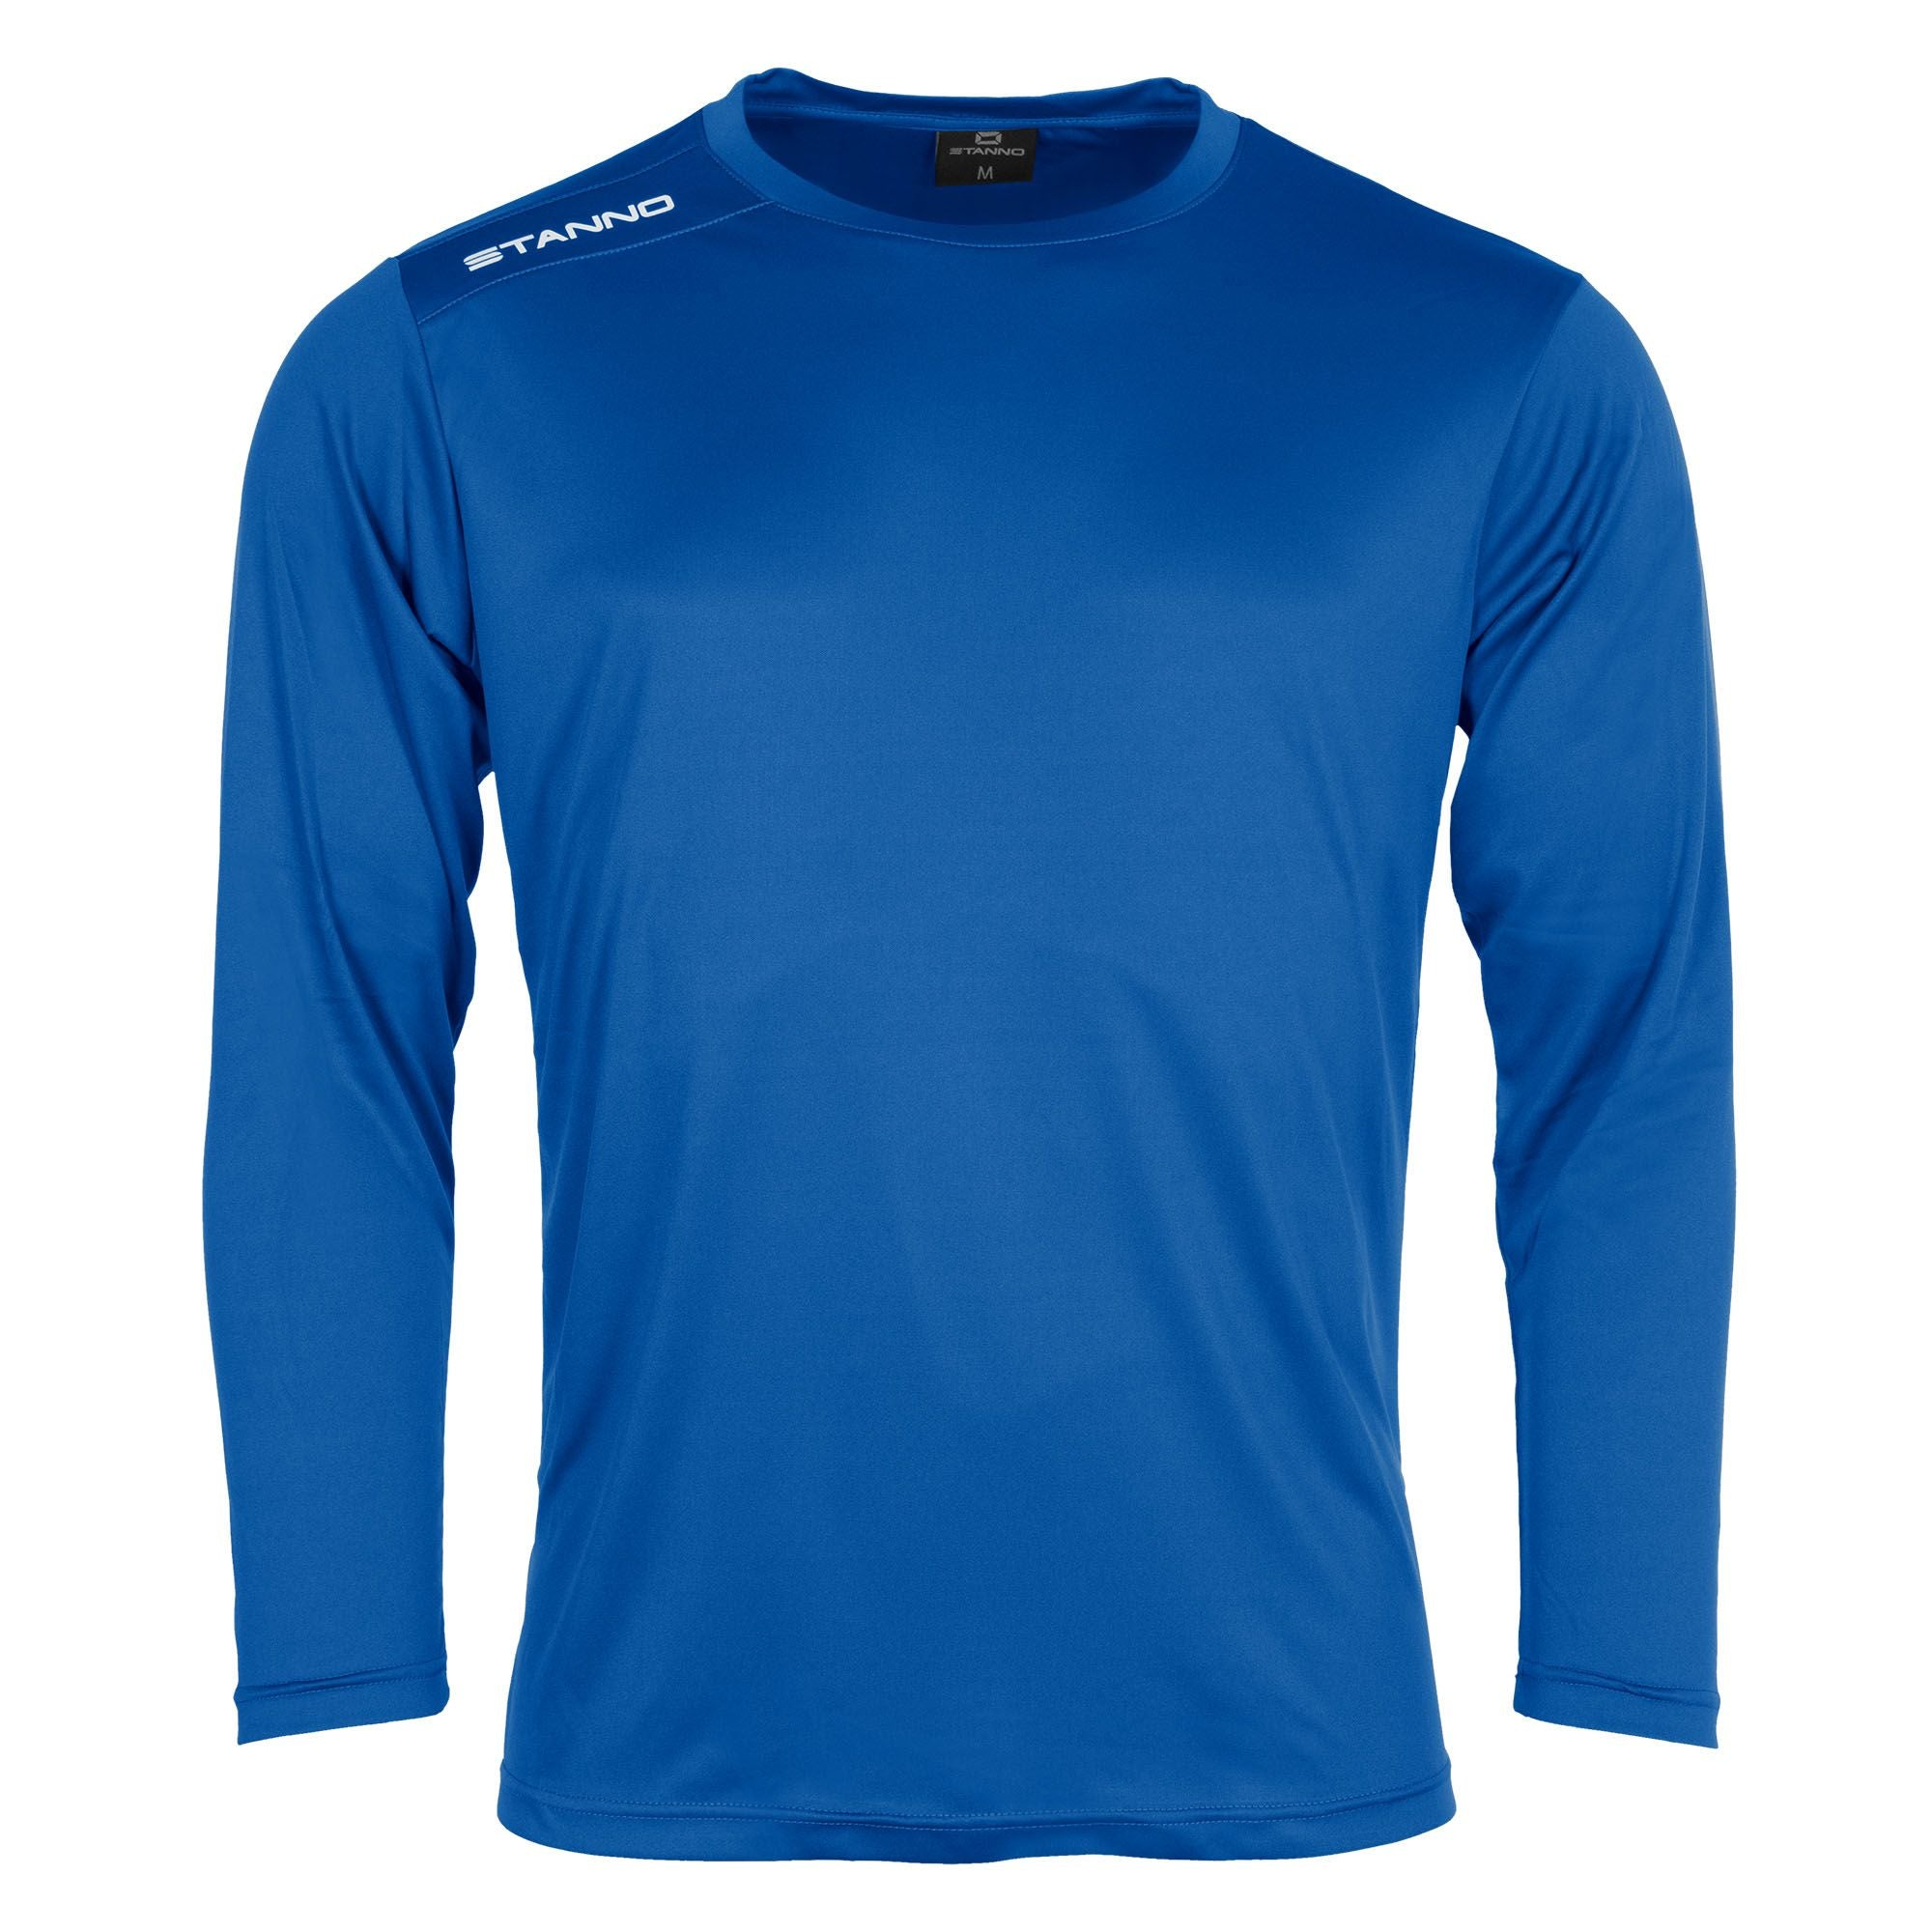 Front of Stanno Field long sleeve shirt in royal blue with white text logo on right shoulder